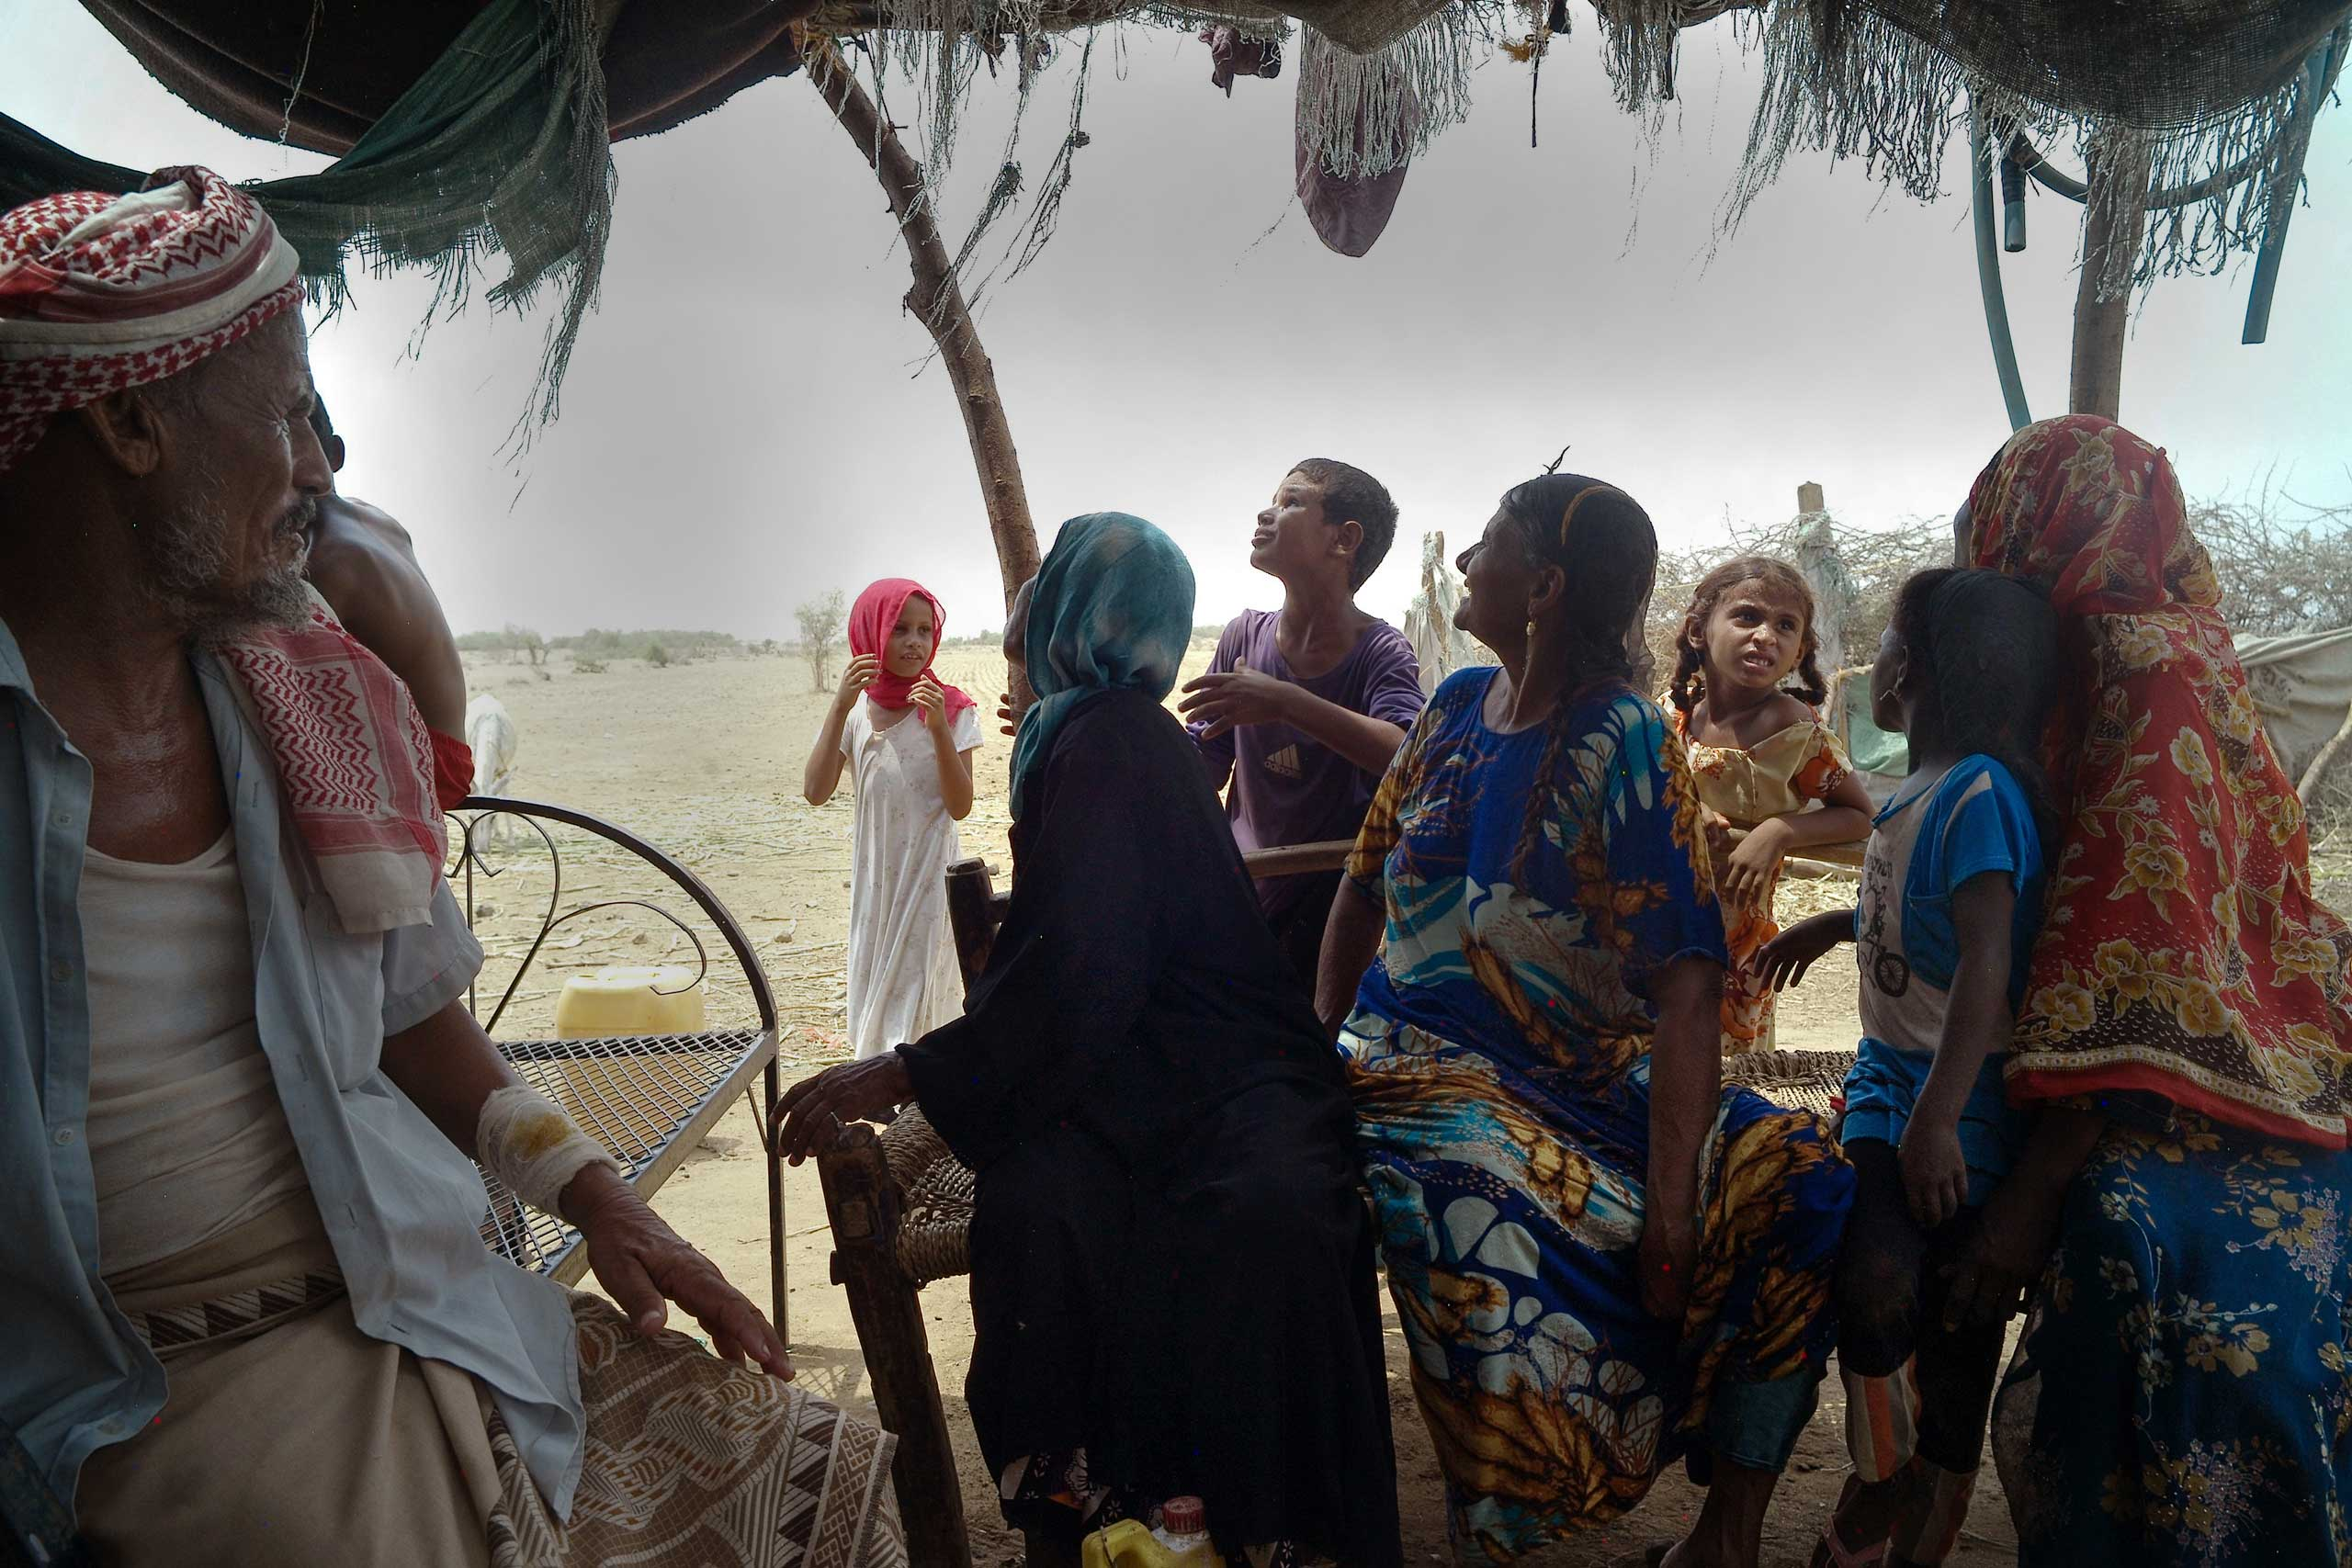 Displaced people (IDPs) from the city of Haradh react as they hear the sound of an airplane above their  camp in the Hajjah governorate, Aug. 2015.